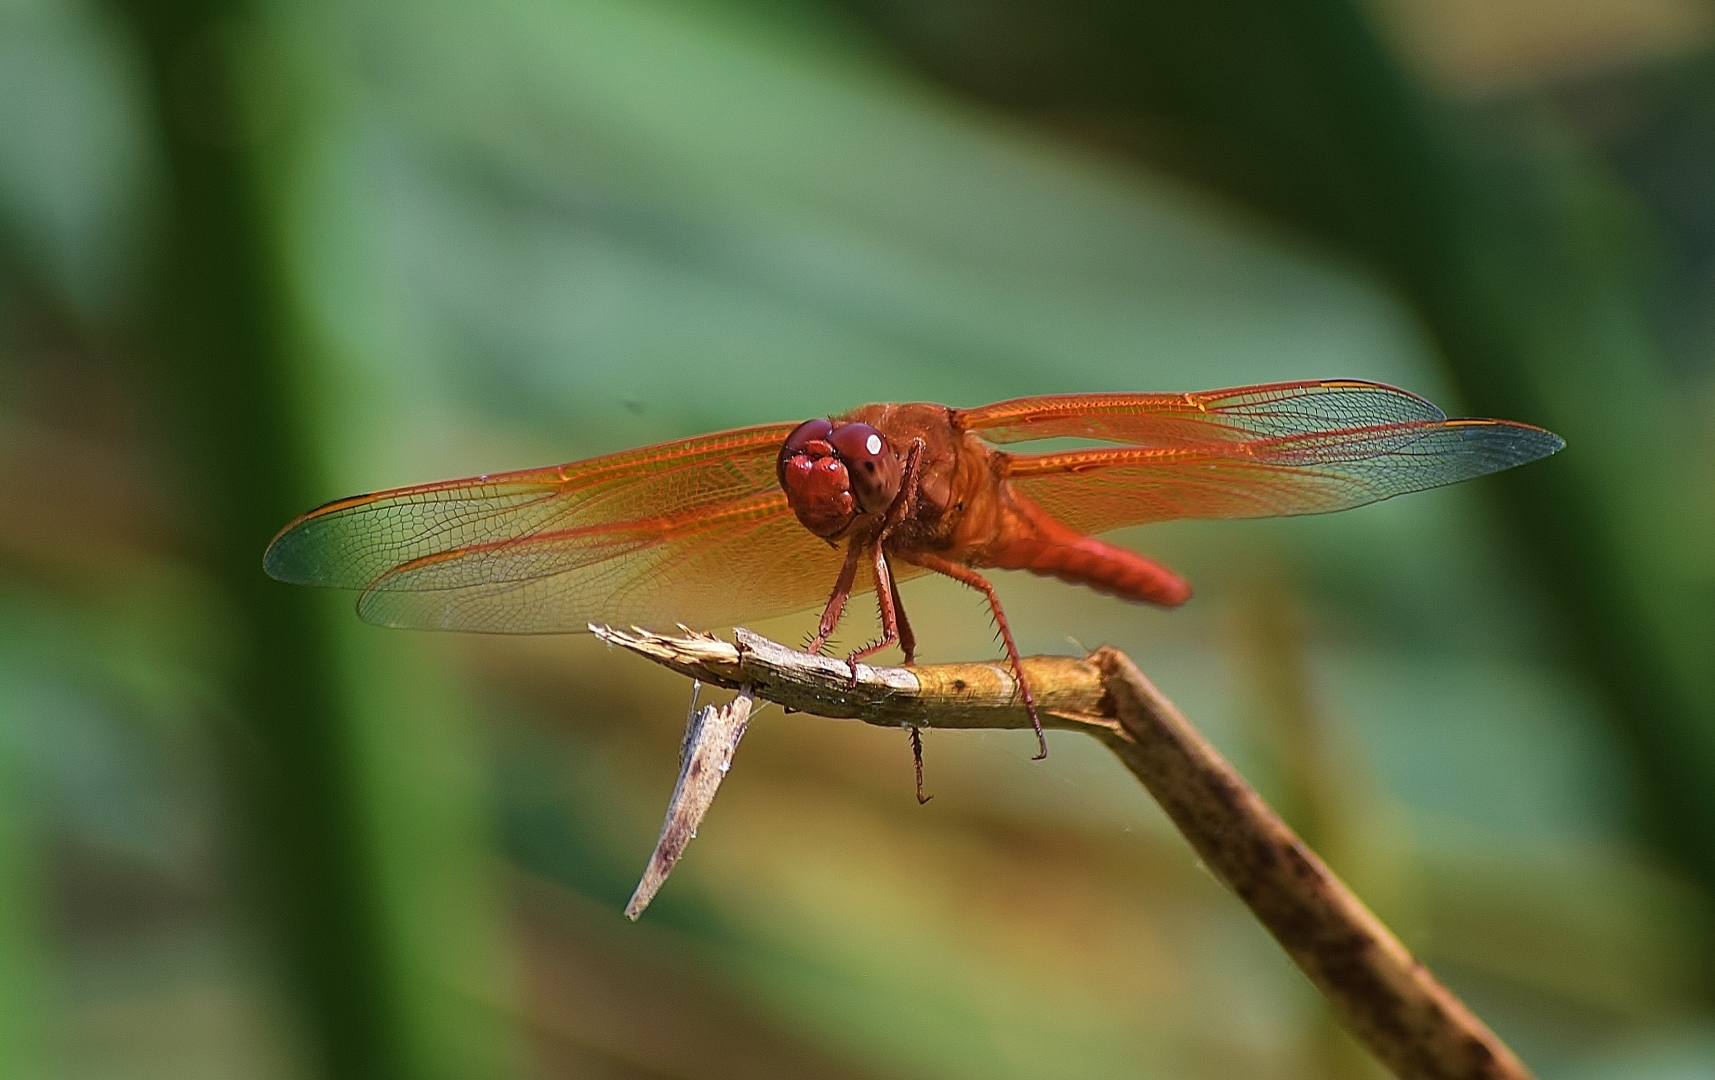 fly dragonfly twig stick branch wings red insect close up macro